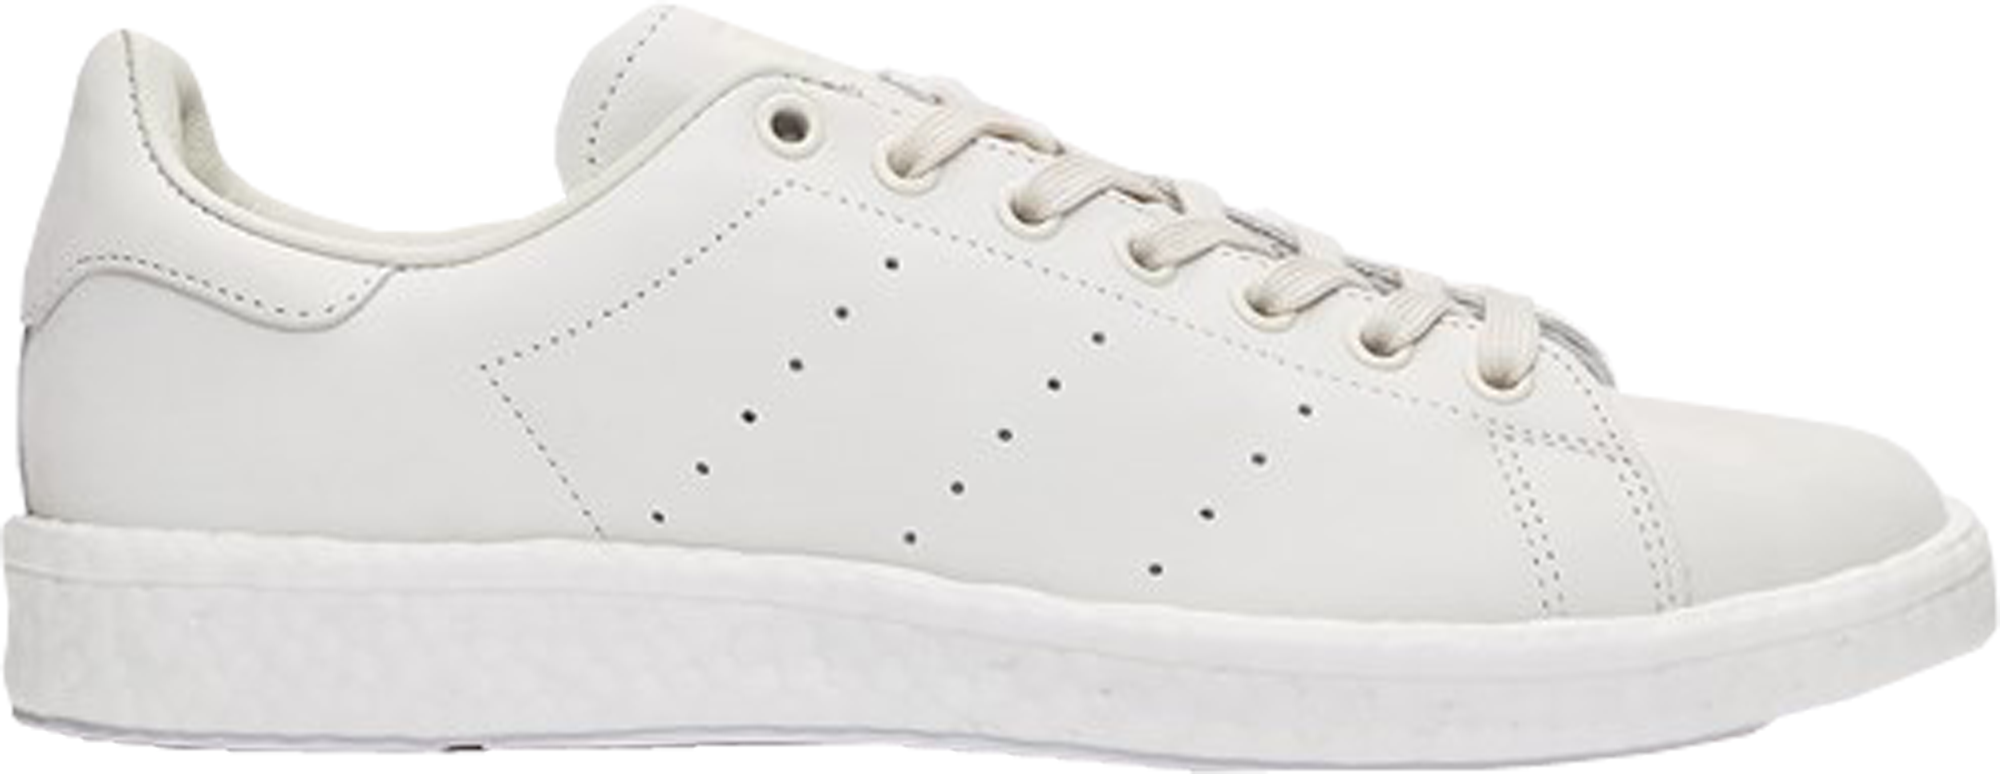 adidas Stan Smith Boost SNS Shades of